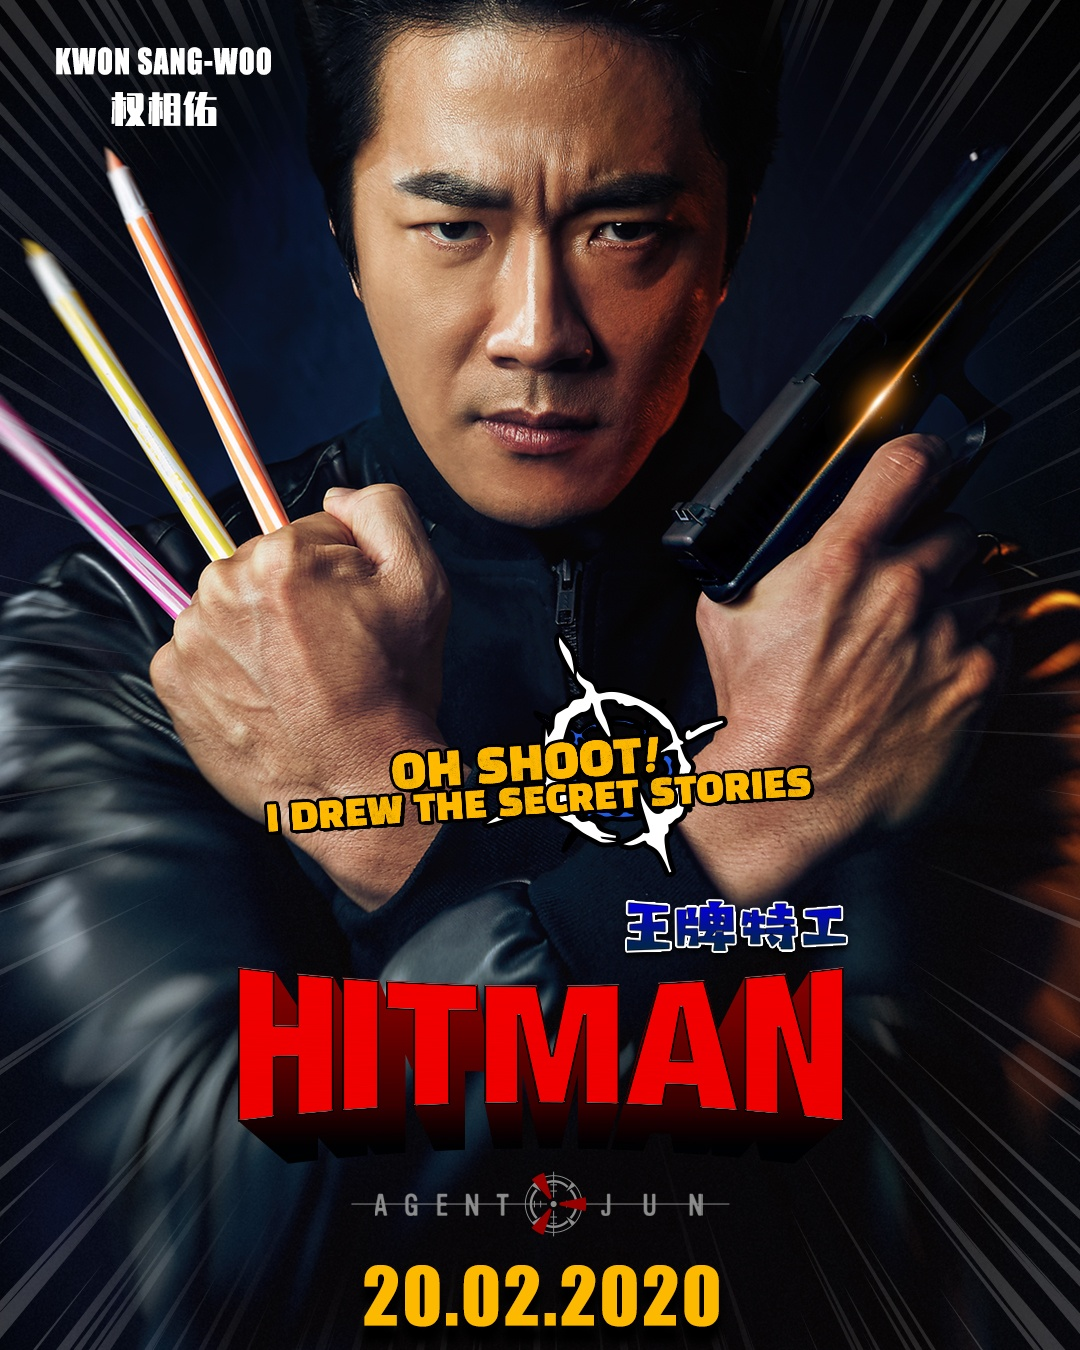 Win Tickets To Exclusive Preview Screening Of Hitman Agent Jun